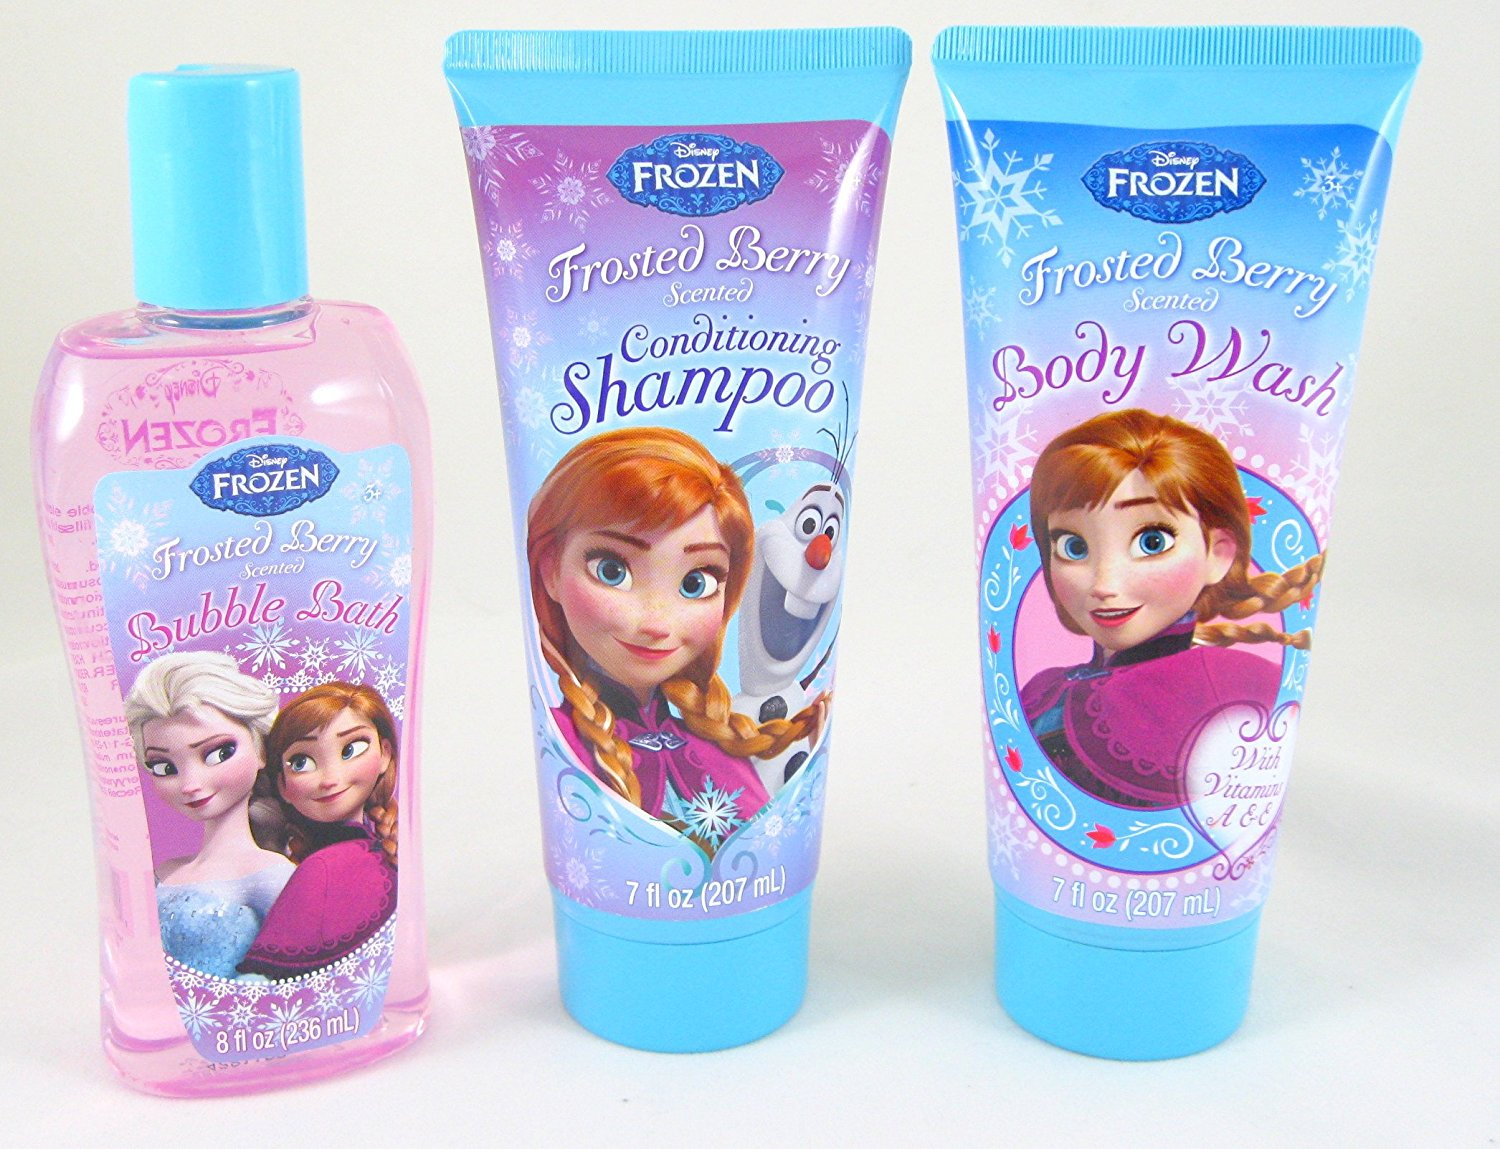 Disney Frozen 3 Piece Set: Conditioning Shampoo, Body Wash, & Bubble Bath Frosted Berry Scented